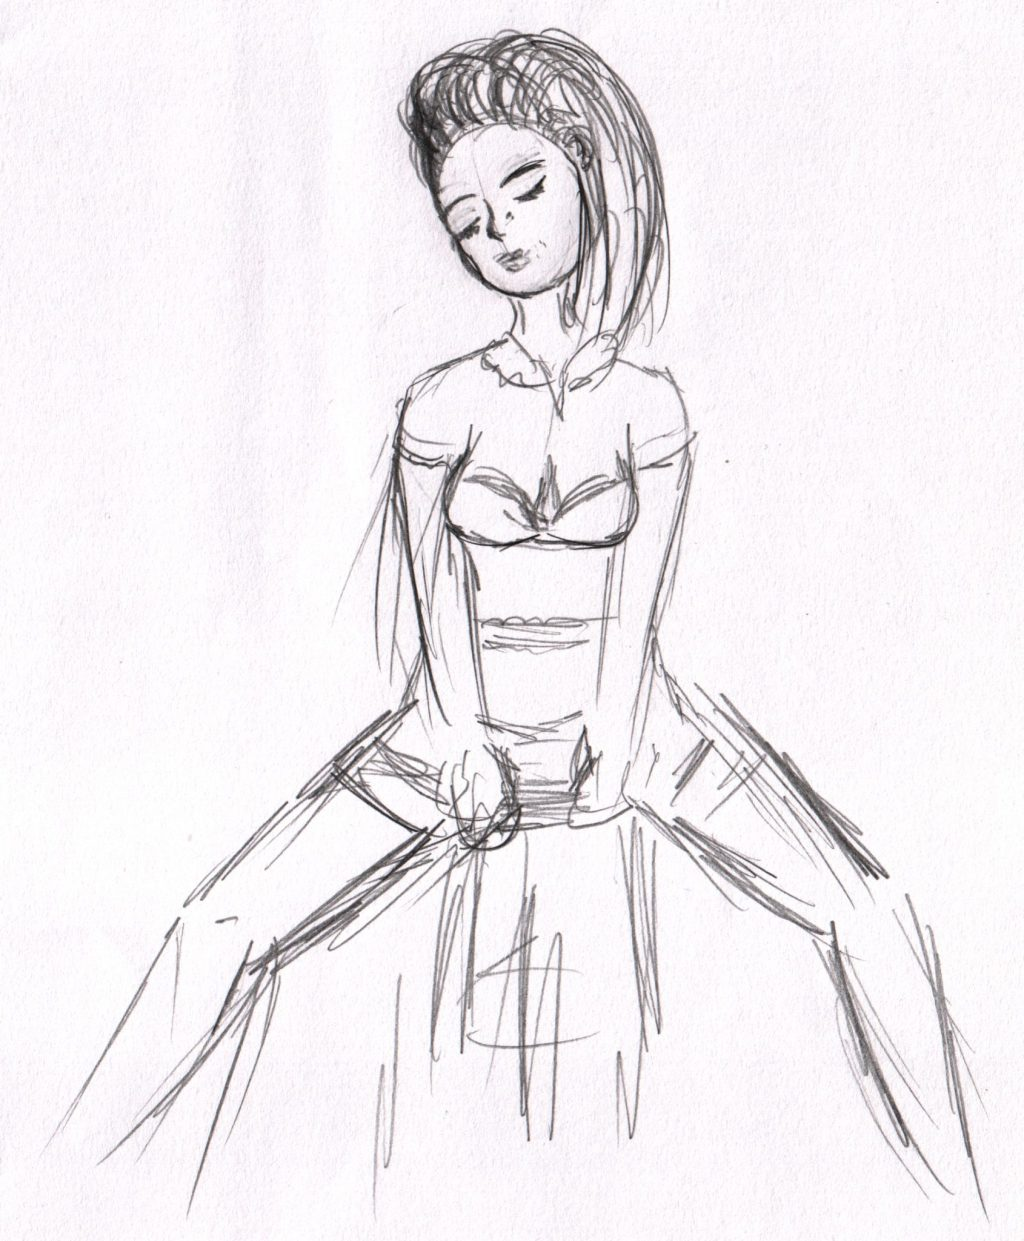 A sketch of a woman posed with legs open on a stool.